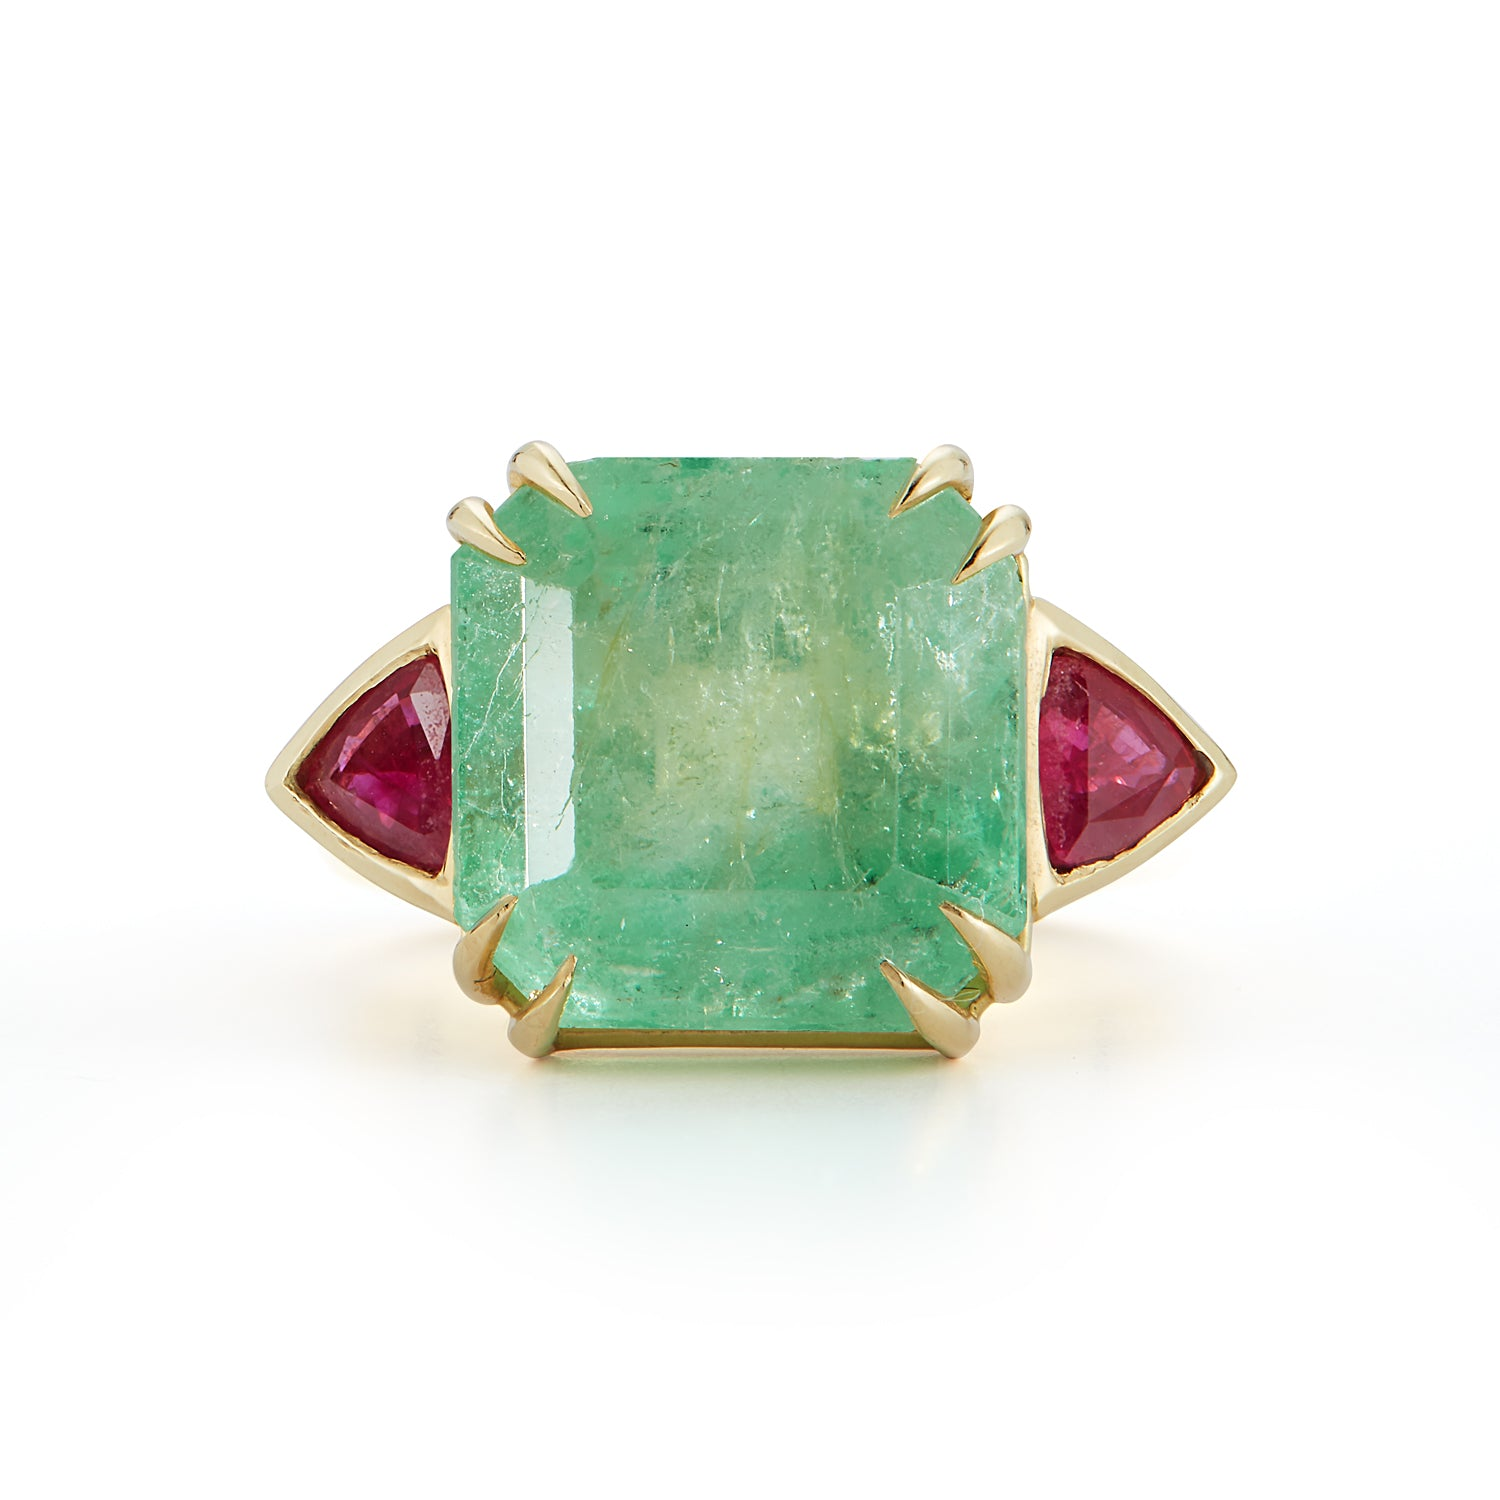 One-of-a-Kind Mint Colombian Emerald and Ruby Ring